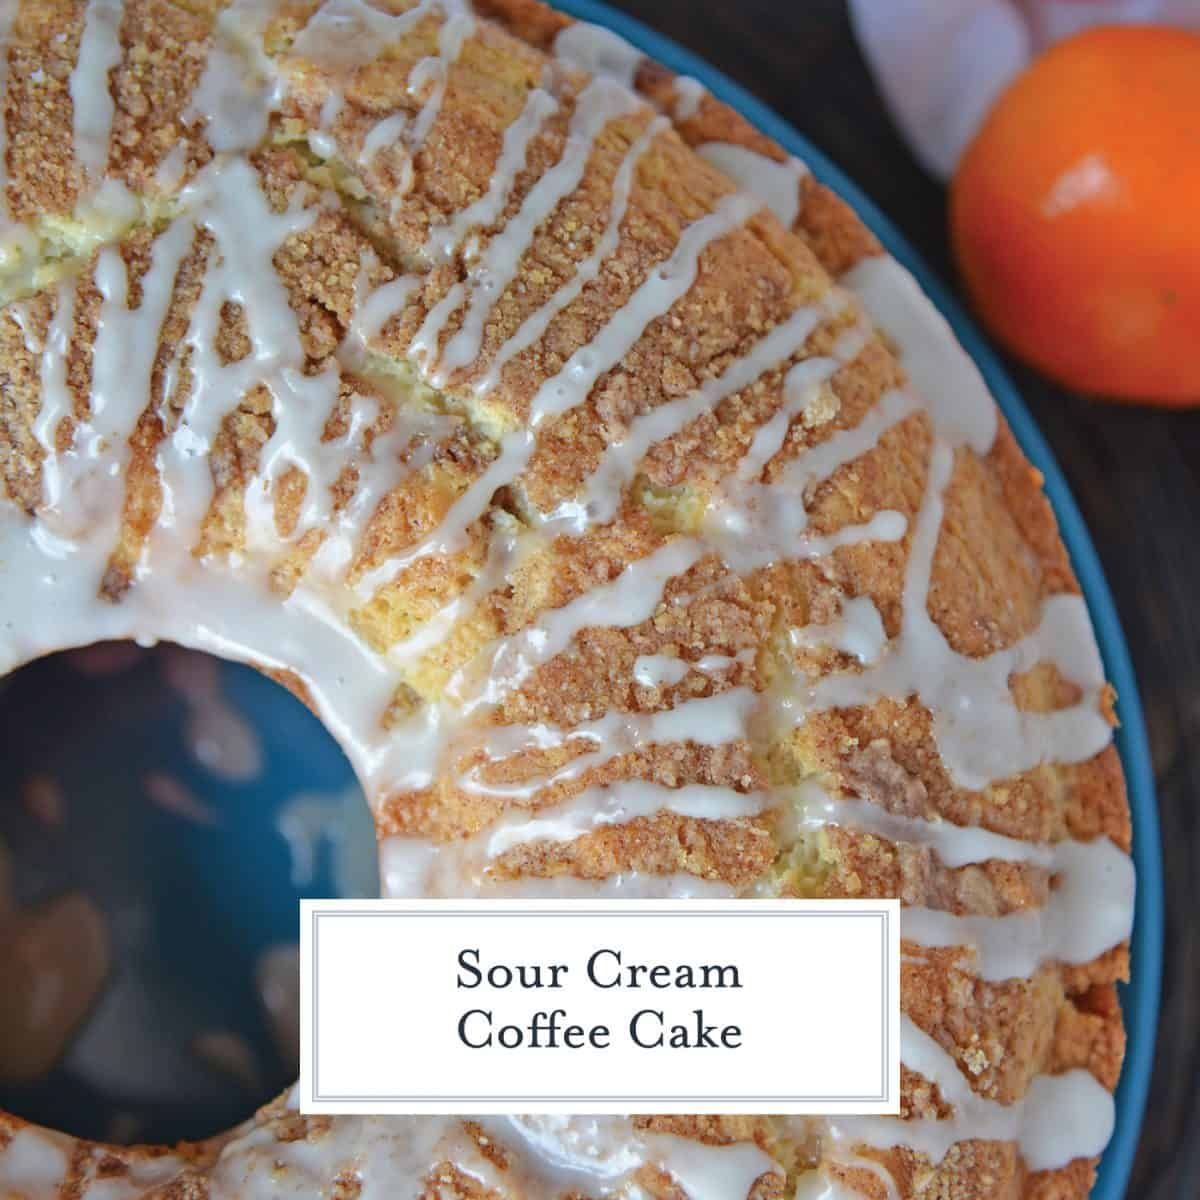 Sour Cream Coffee Cake is an easy coffee cake recipe with